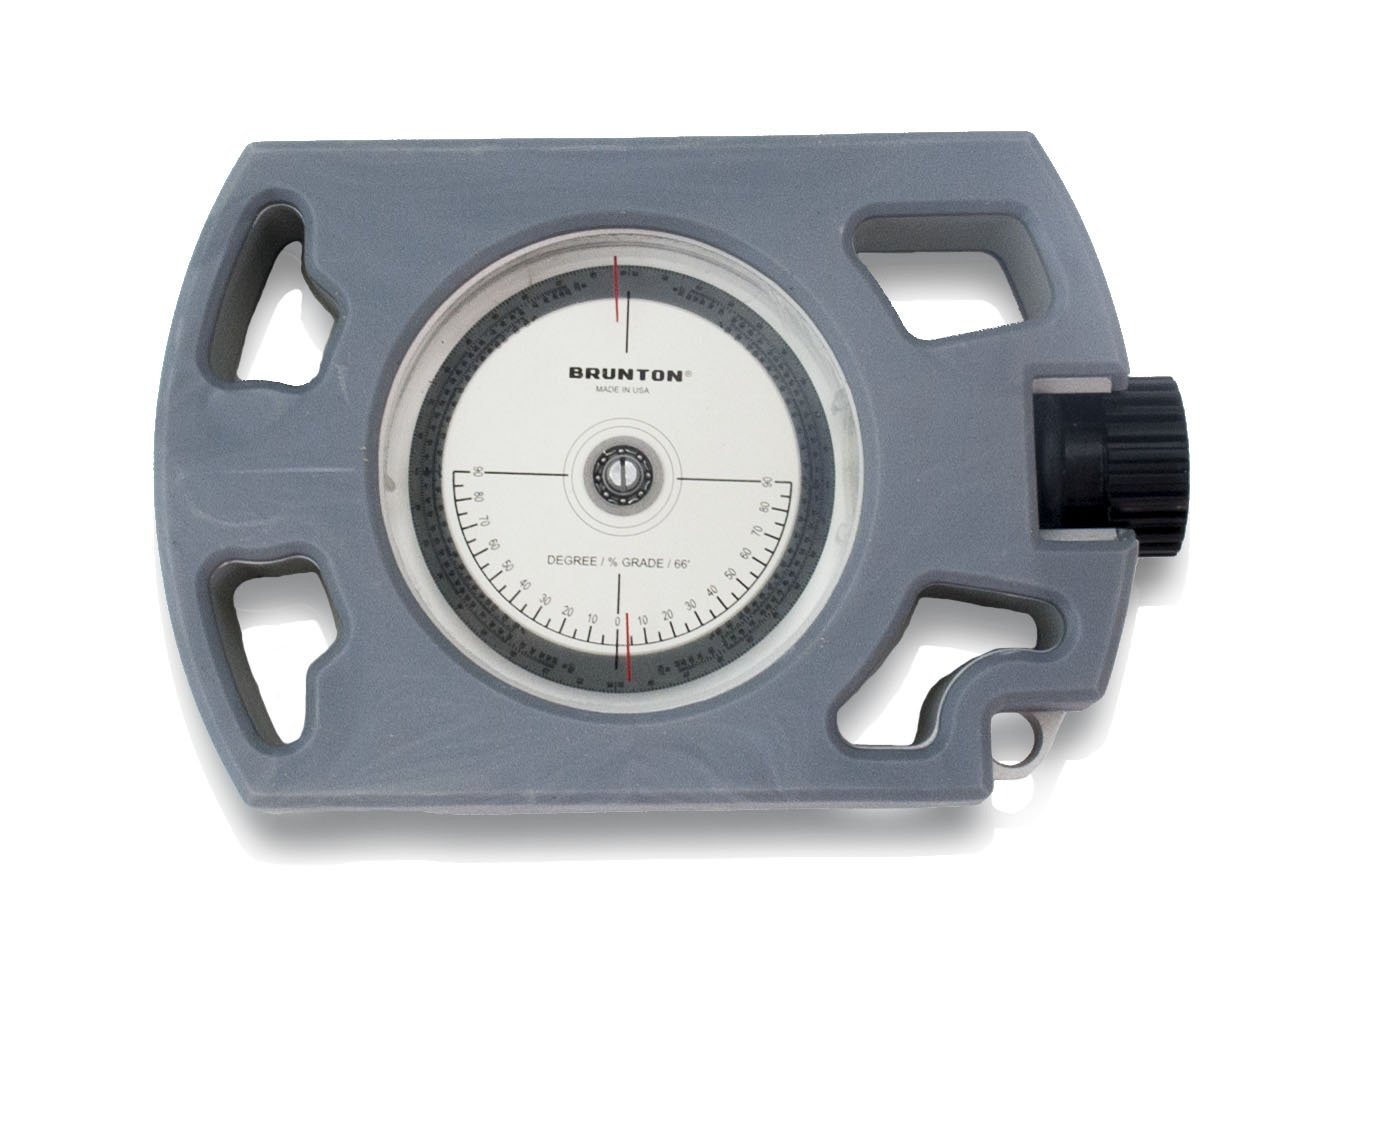 Brunton Omni-Slope Sighting Clinometer 2015